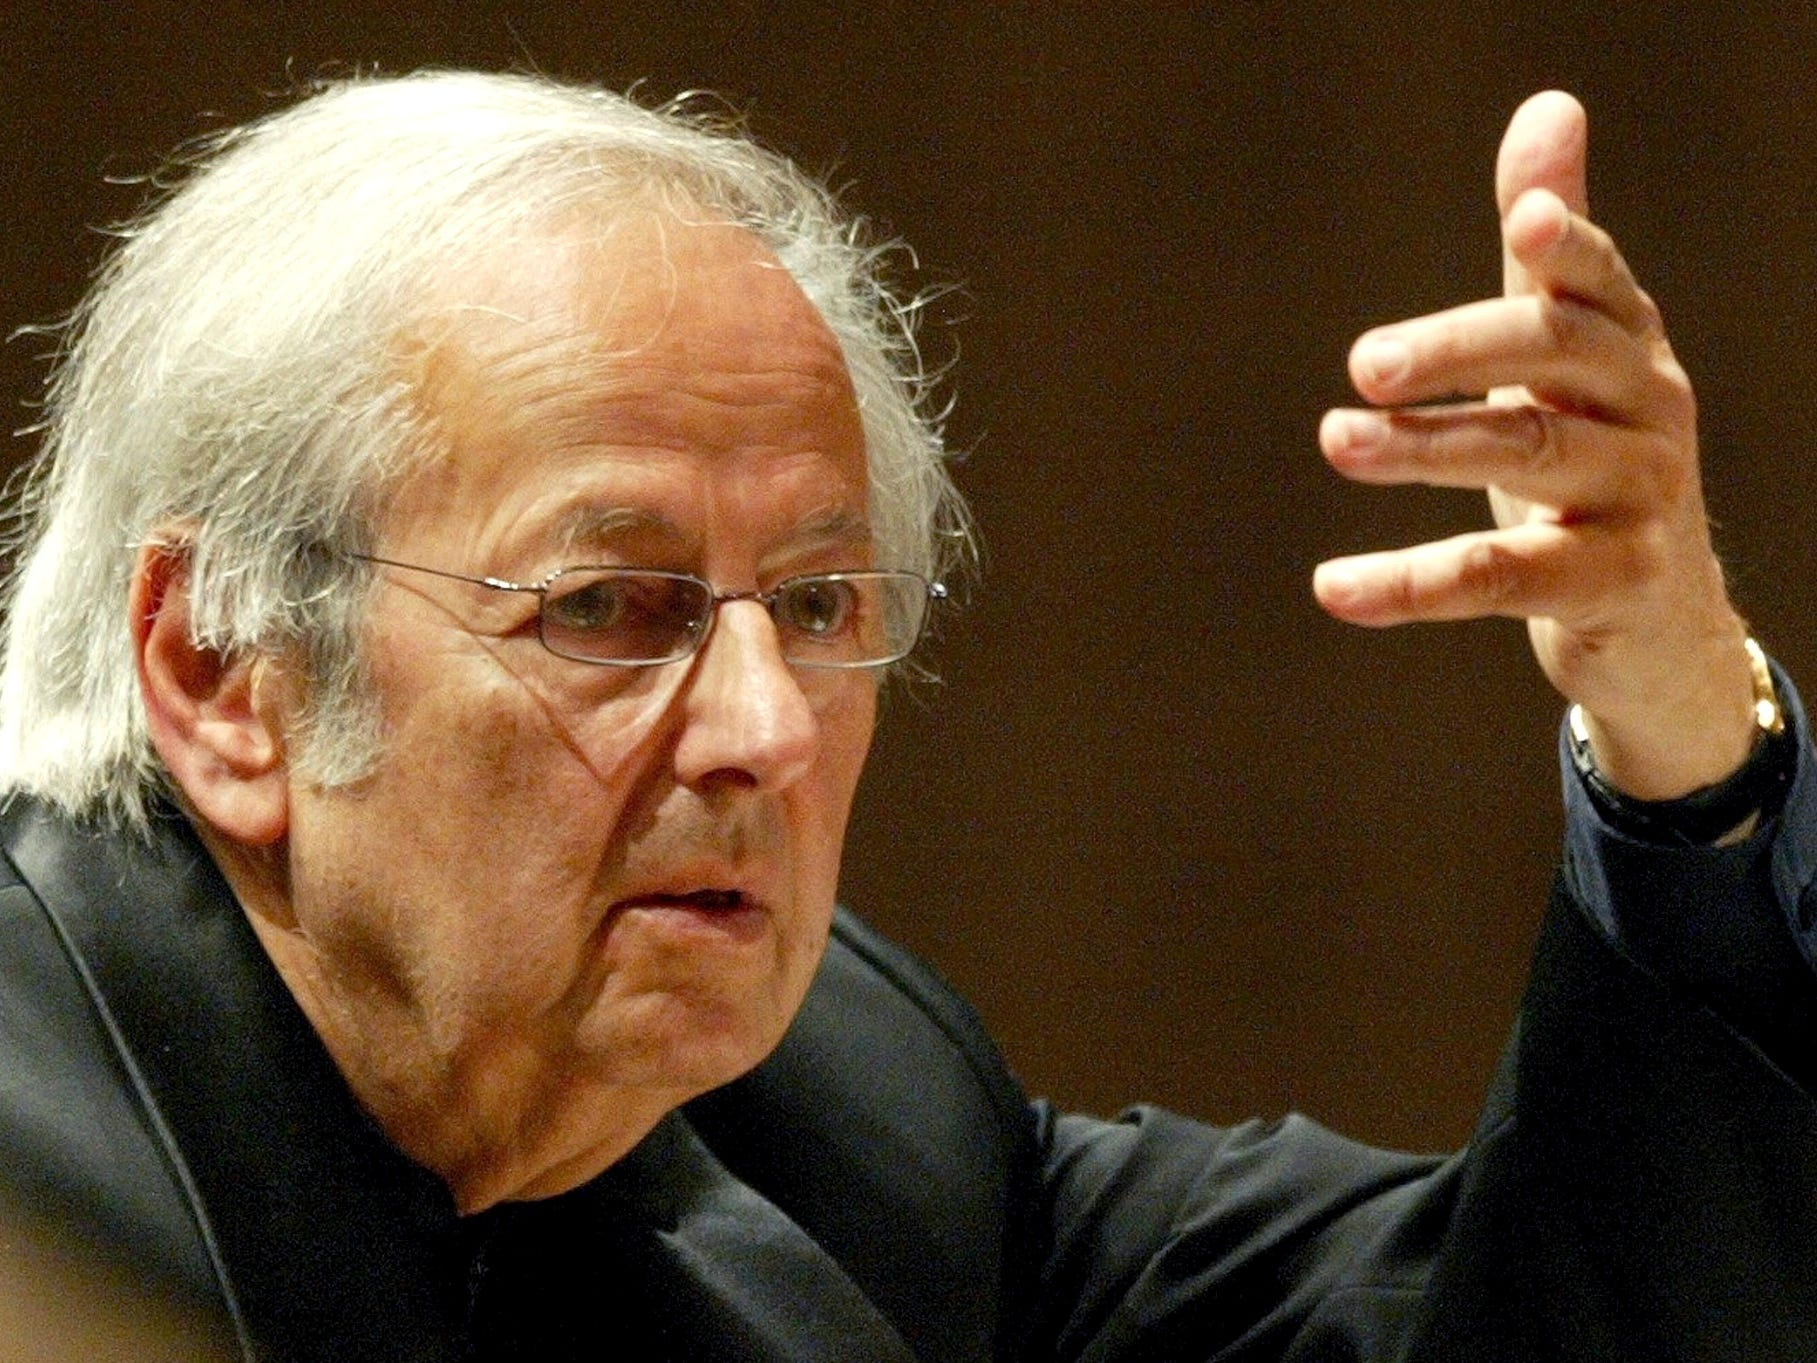 In this Sept. 1, 2004 file photo, conductor of the Oslo Philharmonic Orchestra, Andre Previn, conducts the 15th symphony concert during the Lucerne Festival in the concert hall in Lucerne, Switzerland.  Previn, the pianist, composer and conductor whose broad reach took in the worlds of Hollywood, jazz and classical music, died in his Manhattan home, Thursday, Feb. 28, 2019. He was 89.